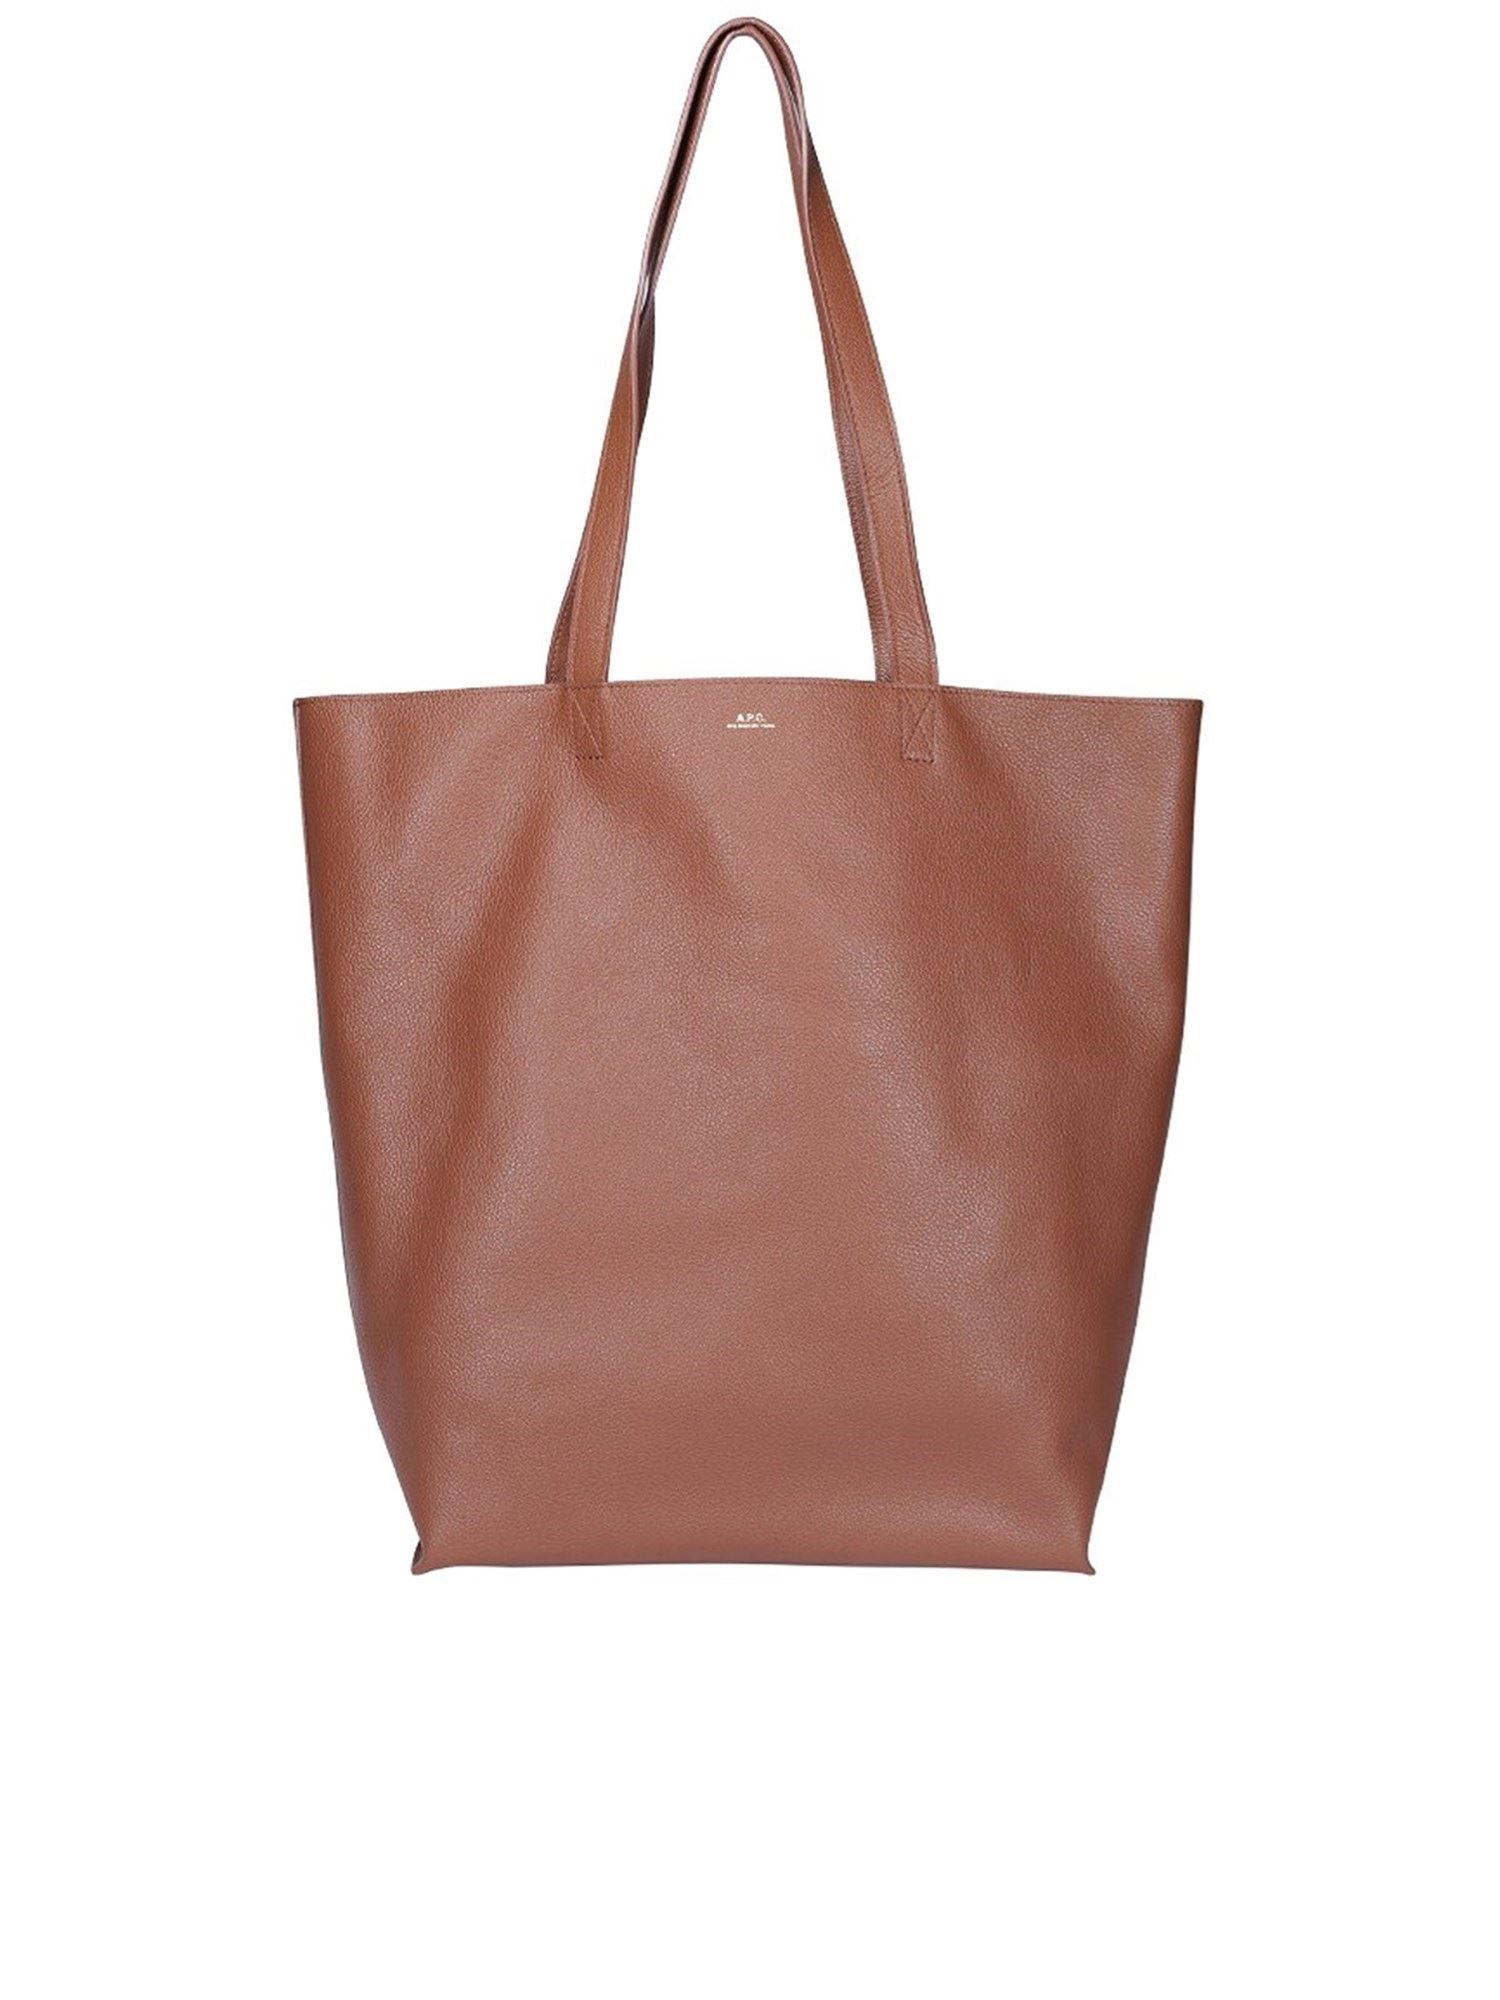 A.p.c. MAIKO TOTE IN BROWN